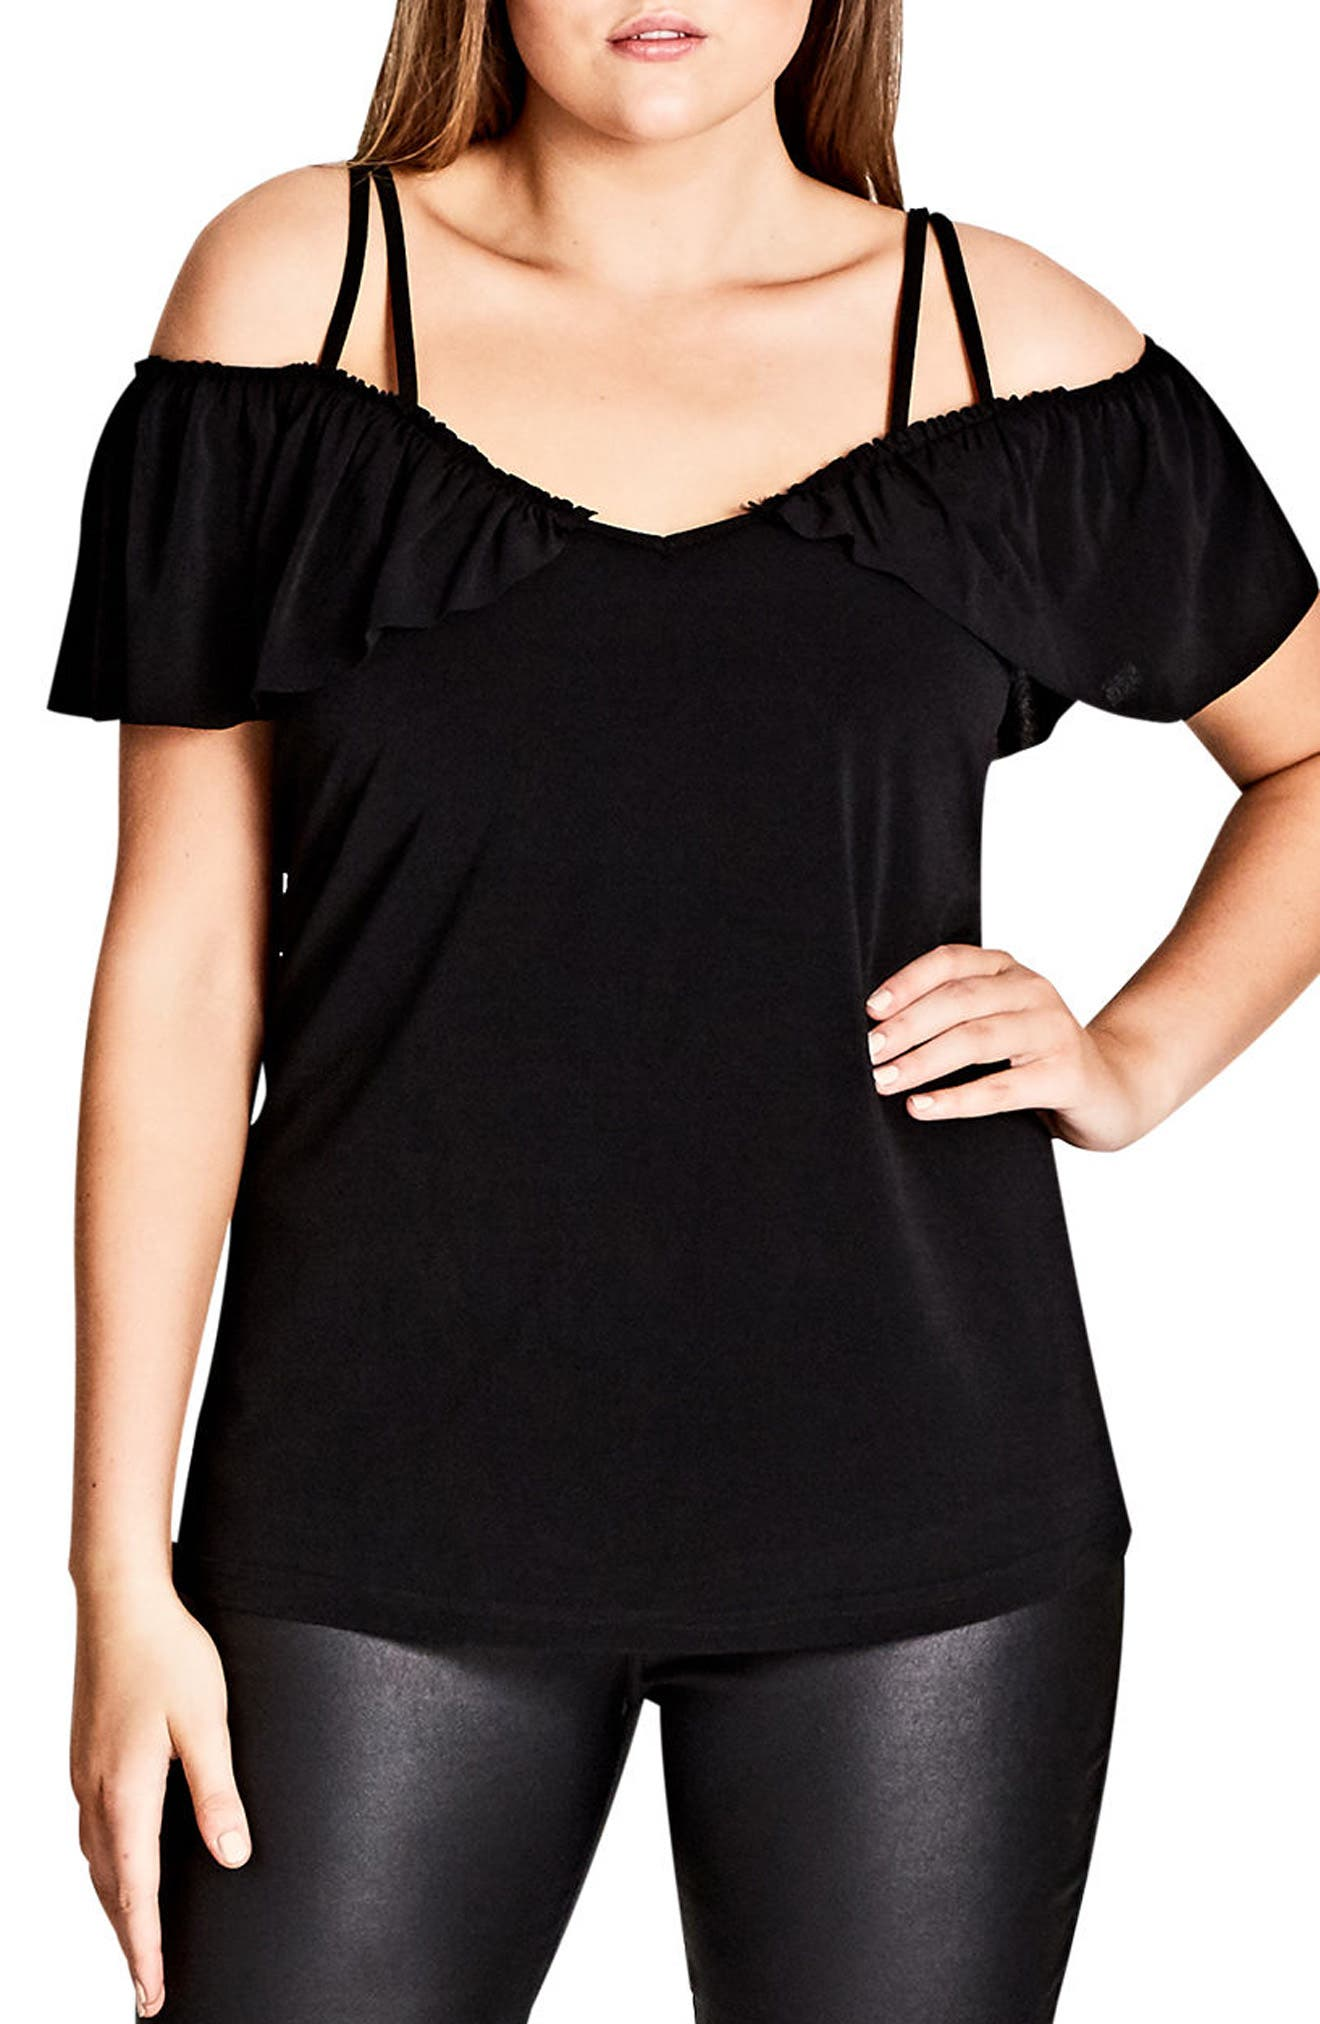 Main Image - City Chic Frill Off the Shoulder Top (Plus Side)